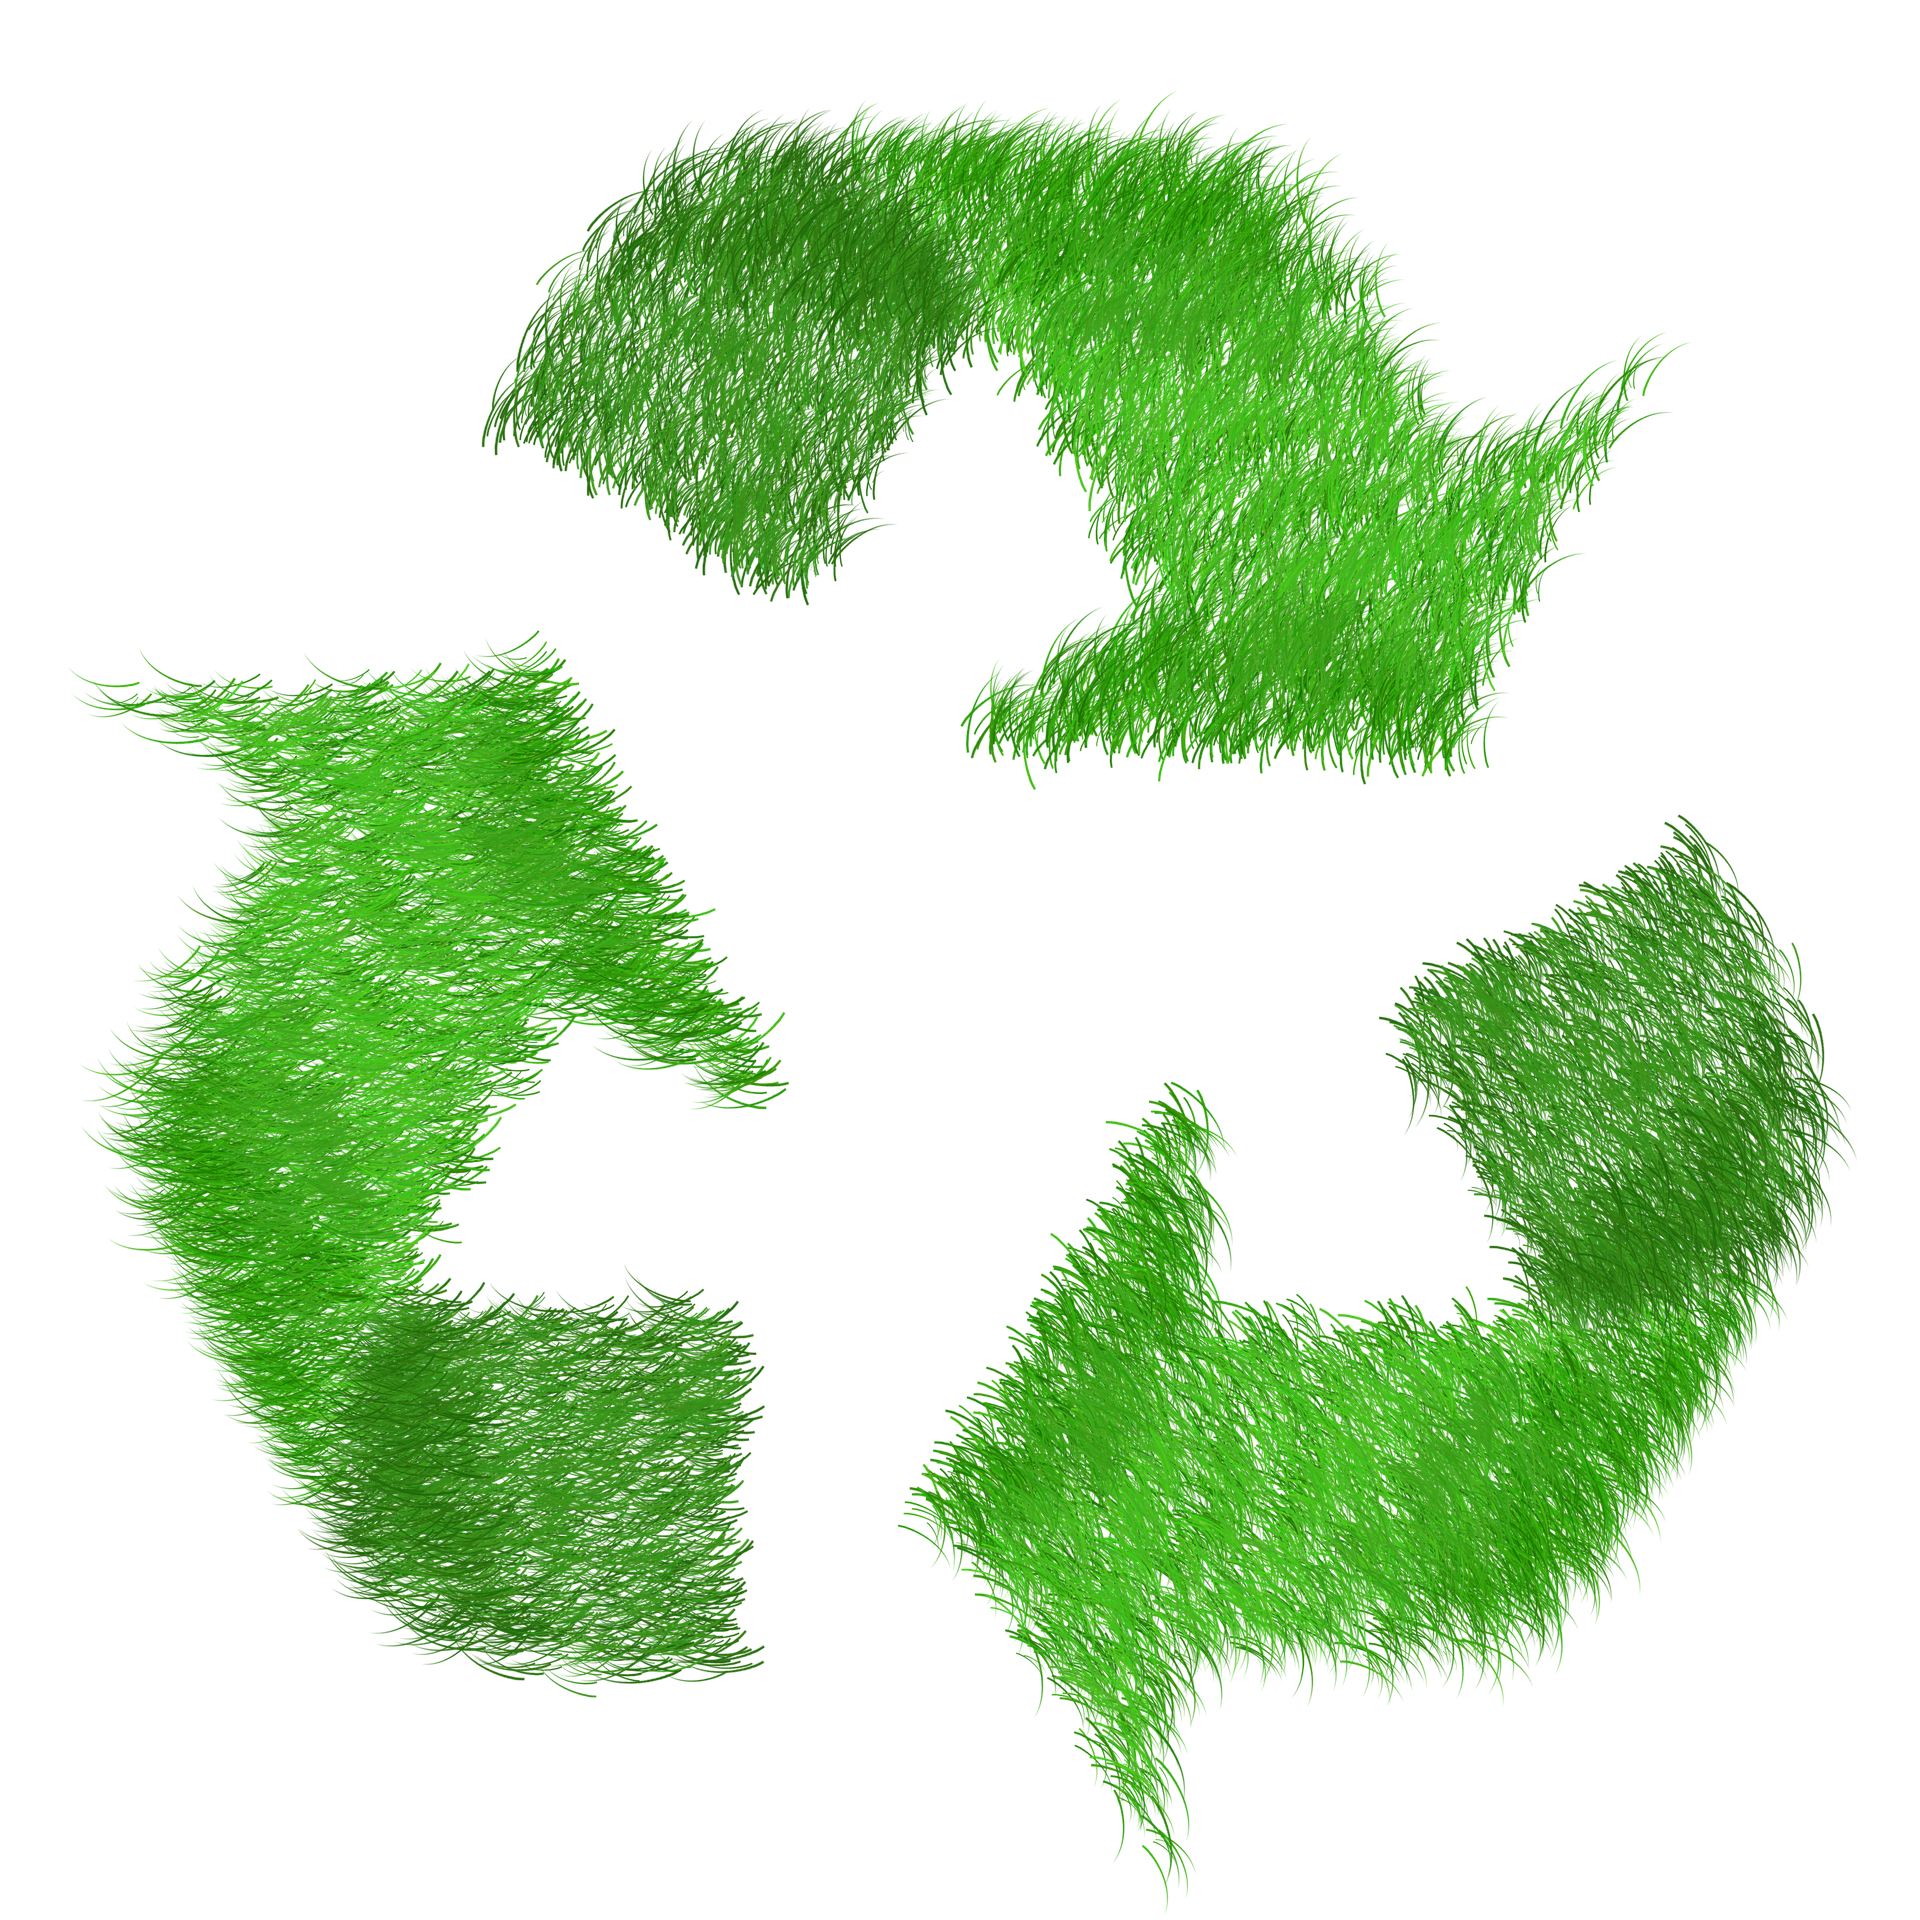 CCGC Recycling Programs - Crystal Clean Green Cleaning recycles plastic, glass, and paper items in it office. All consideration is in reducing the amount of consumables in the first place; such as being a paperless office, bulk purchasing, choosing containers, etc.. When applicable, all items are recycled.